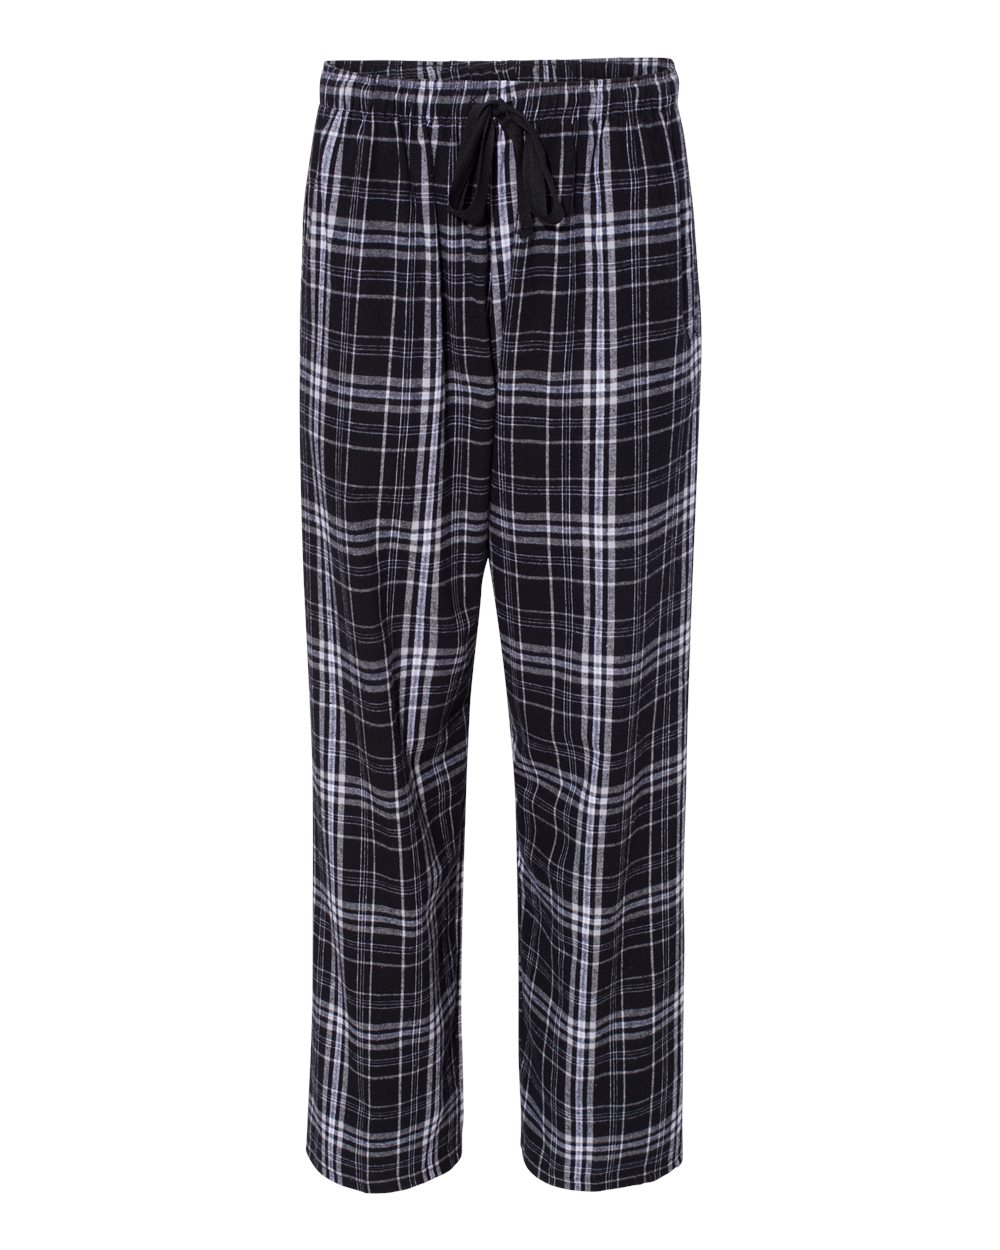 Boxercraft-Unisex-Flannel-Pants-With-Pockets-Pajama-Pants-F20-up-to-2XL thumbnail 6